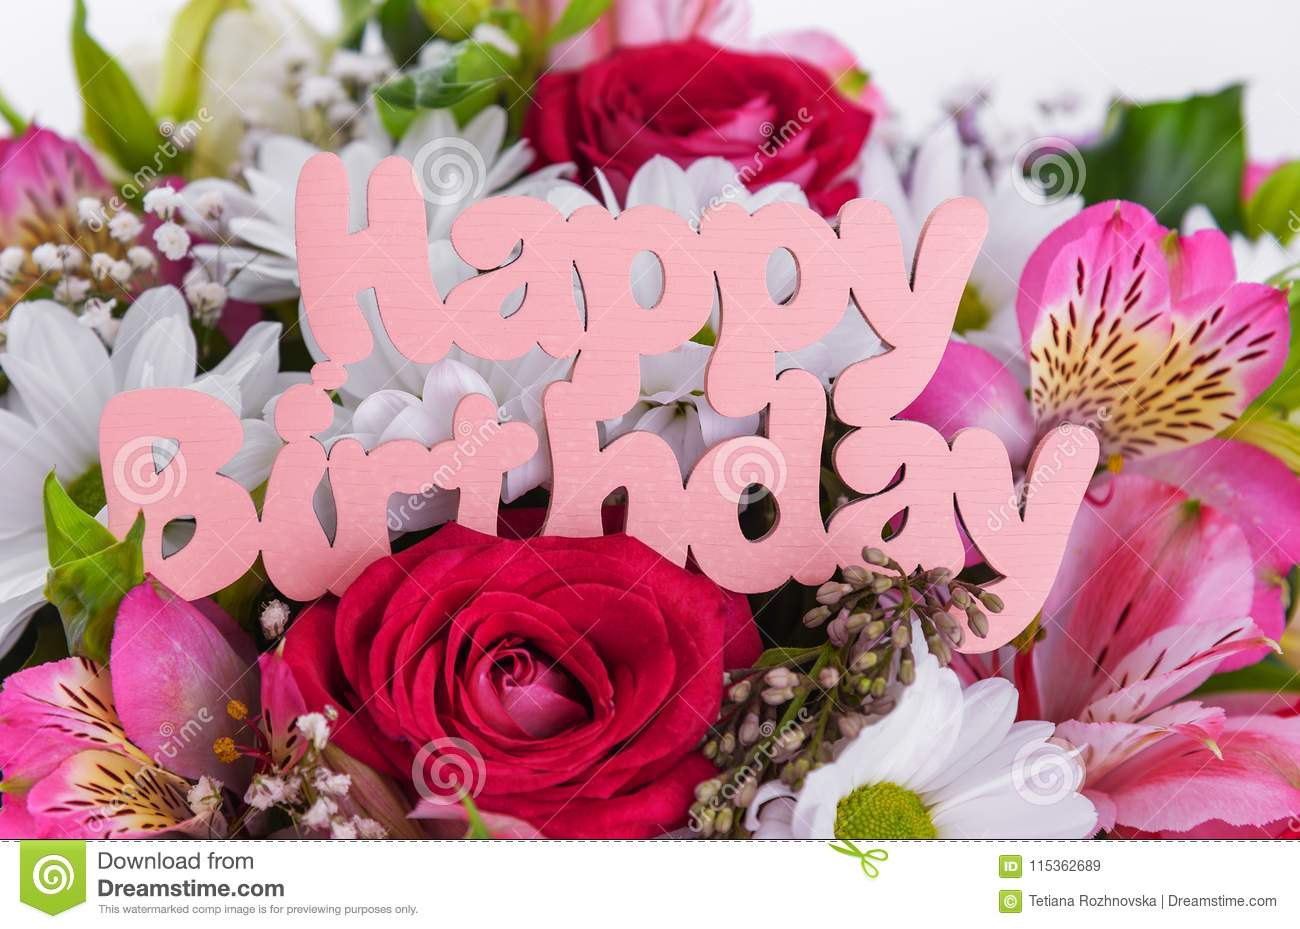 Inscription is happy birthday on the flowers stock image image of download inscription is happy birthday on the flowers stock image image of anniversary izmirmasajfo